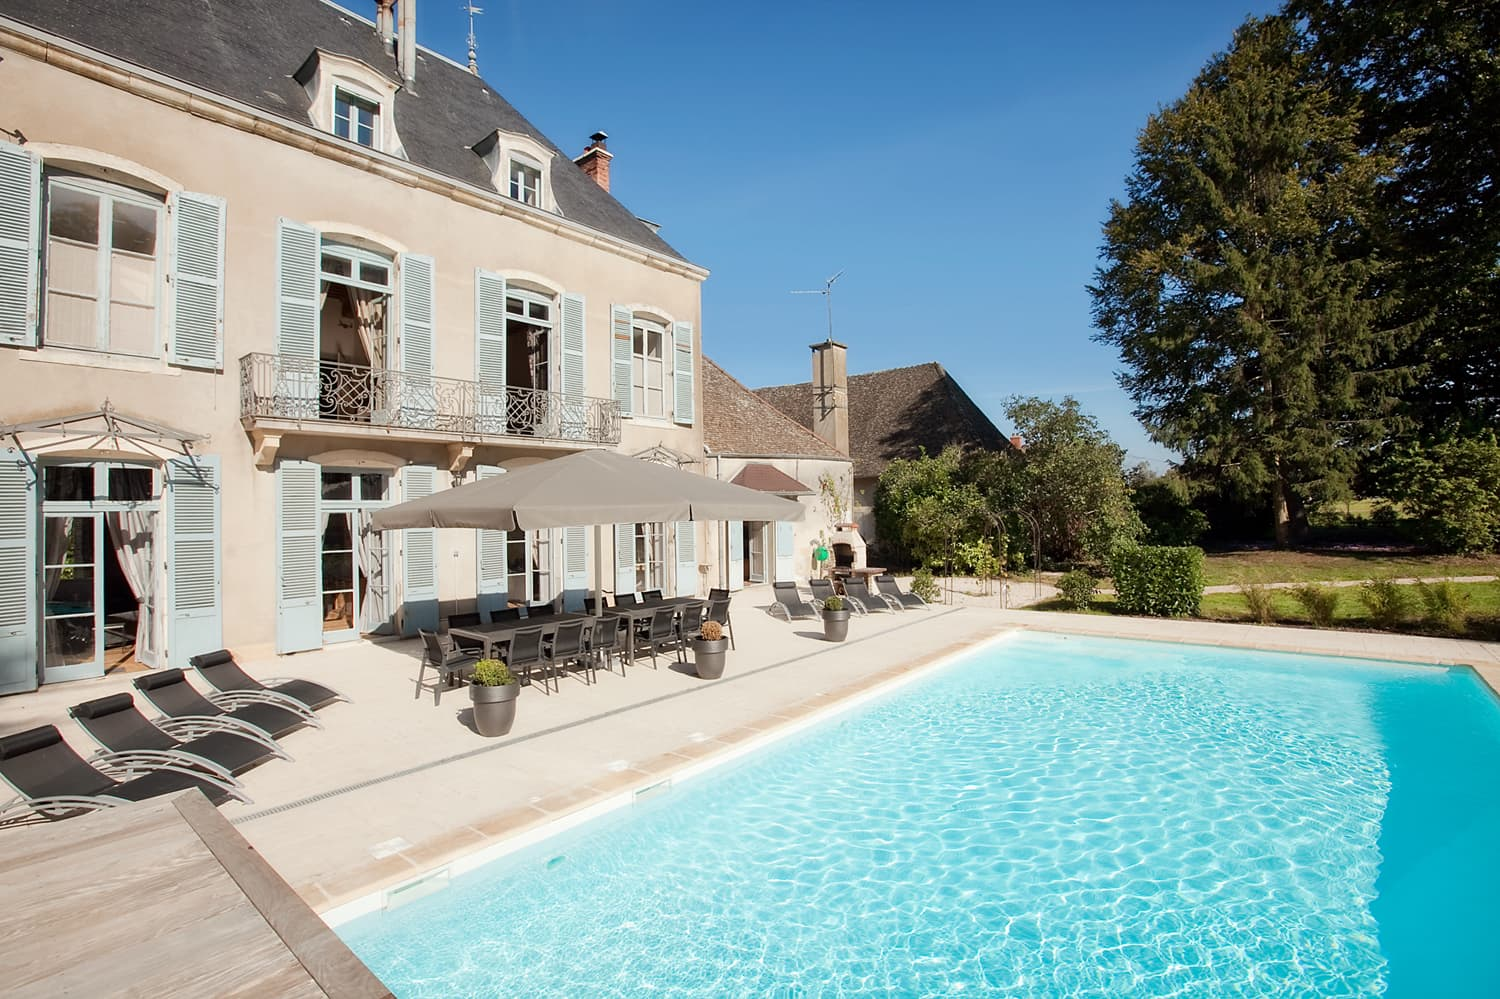 Holiday château in Burgundy with private, heated pool